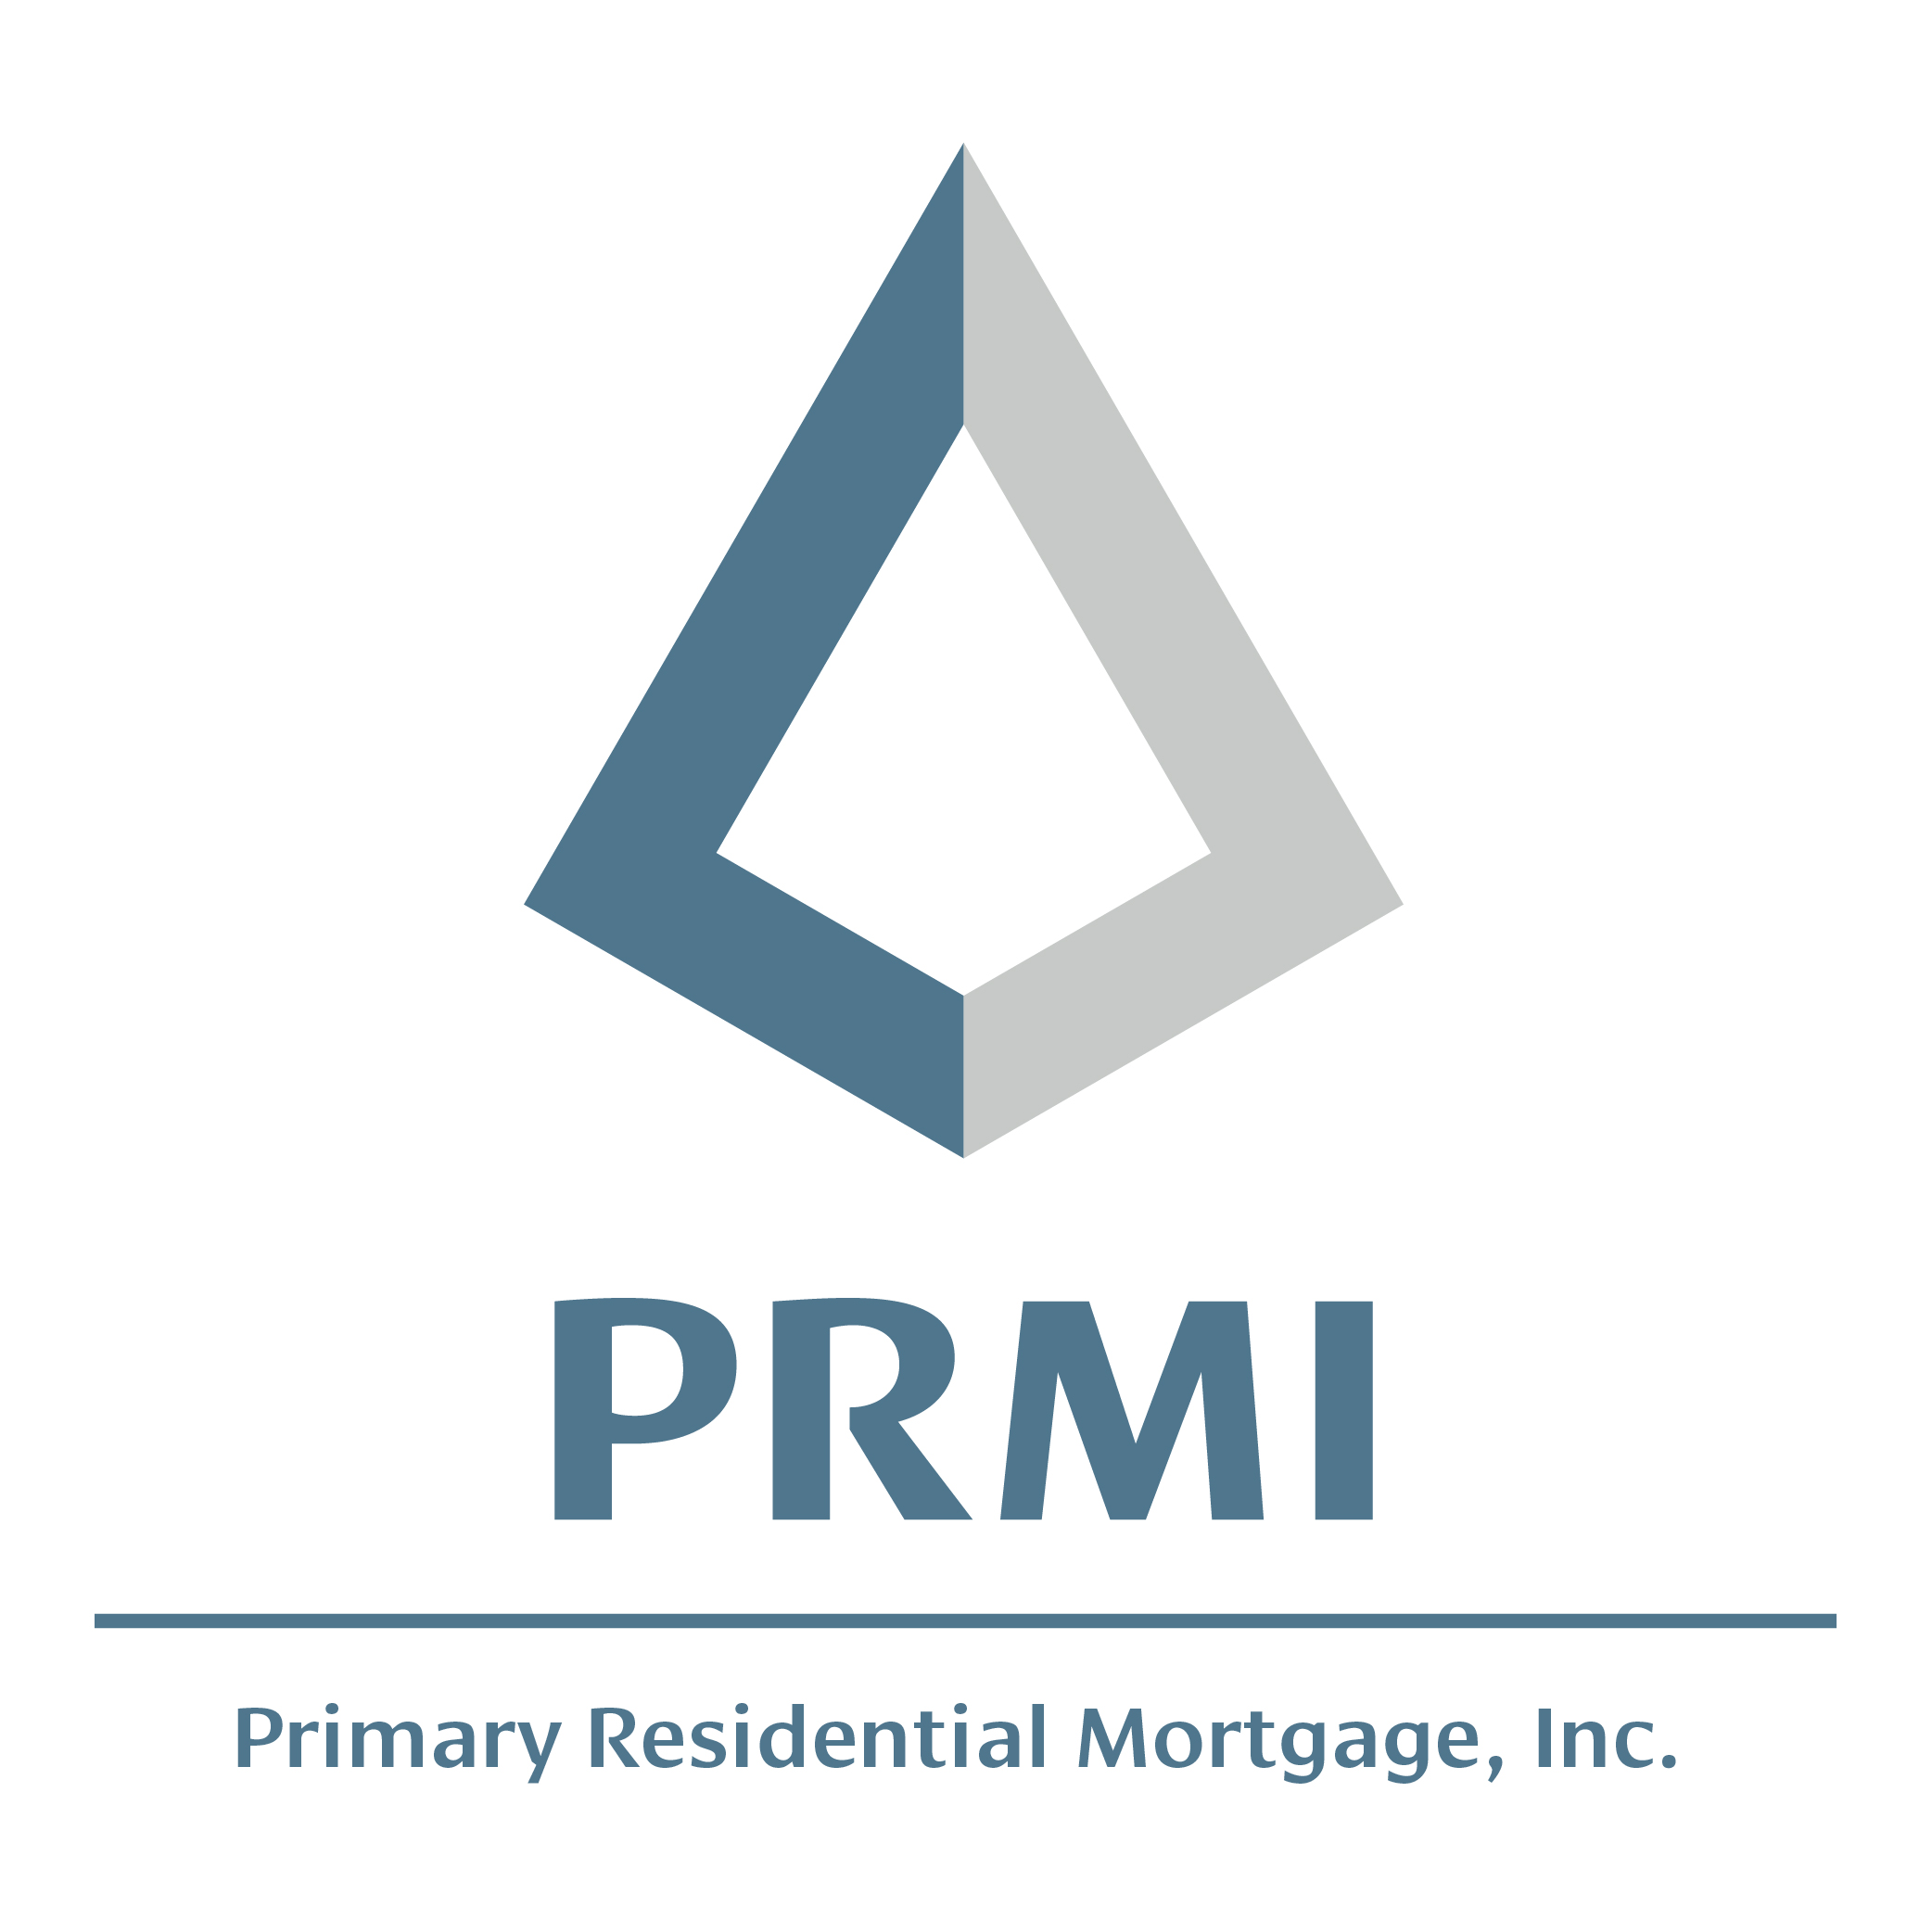 Primary Residential Mortgage, Inc. - New Lexington, OH 43764 - (740)342-4188 | ShowMeLocal.com